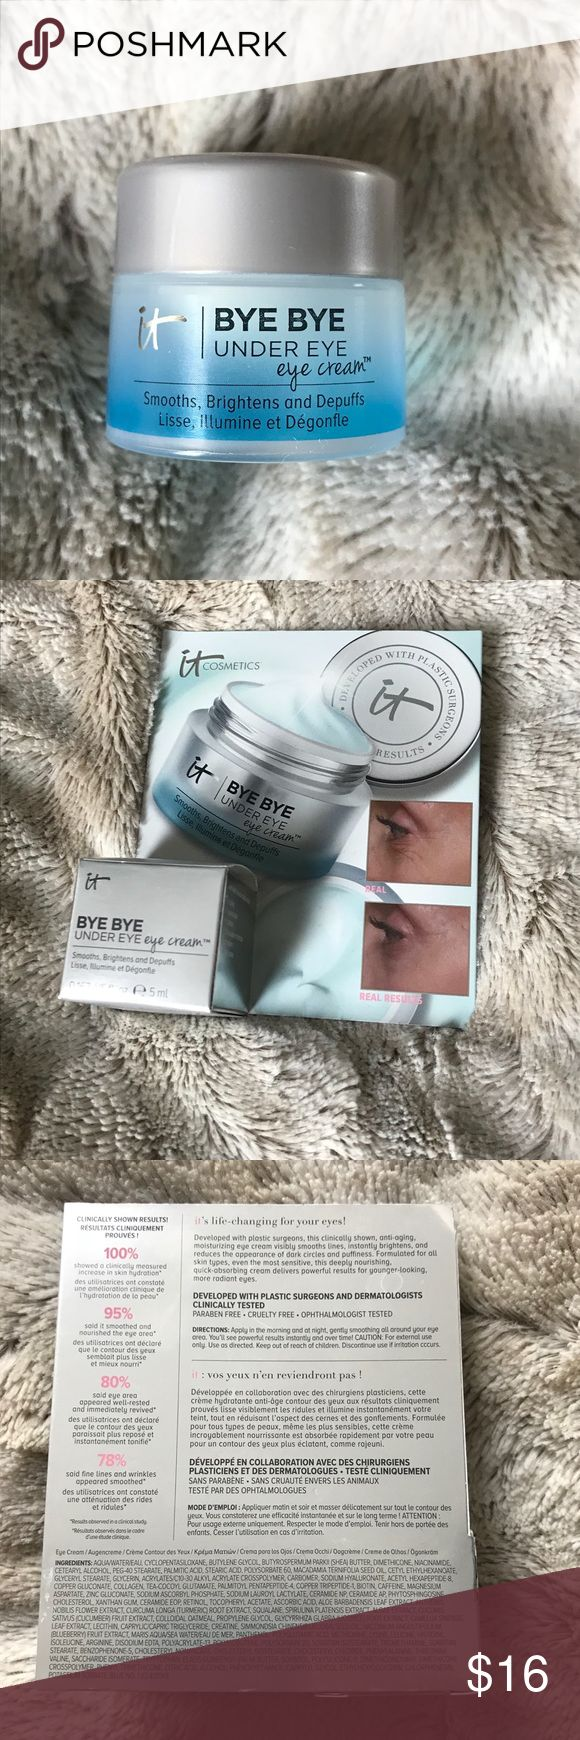 NEW IN BOX IT COSMETICS Bye Bye Under Eye Cream NEW unused (in box) travel sized IT COSMETICS Bye Bye Under Eye Cream (0.5 ml)  Make tired eyes look instantly more awake!   Developed with plastic surgeons, this clinically shown anti-aging, moisturizing eye cream visibly smooths lines and brightens while reducing the appearance of dark circles and puffiness.   Perfect for all skin types, even the most sensitive, the deeply nourishing, quick-absorbing formula delivers powerful results to leave…